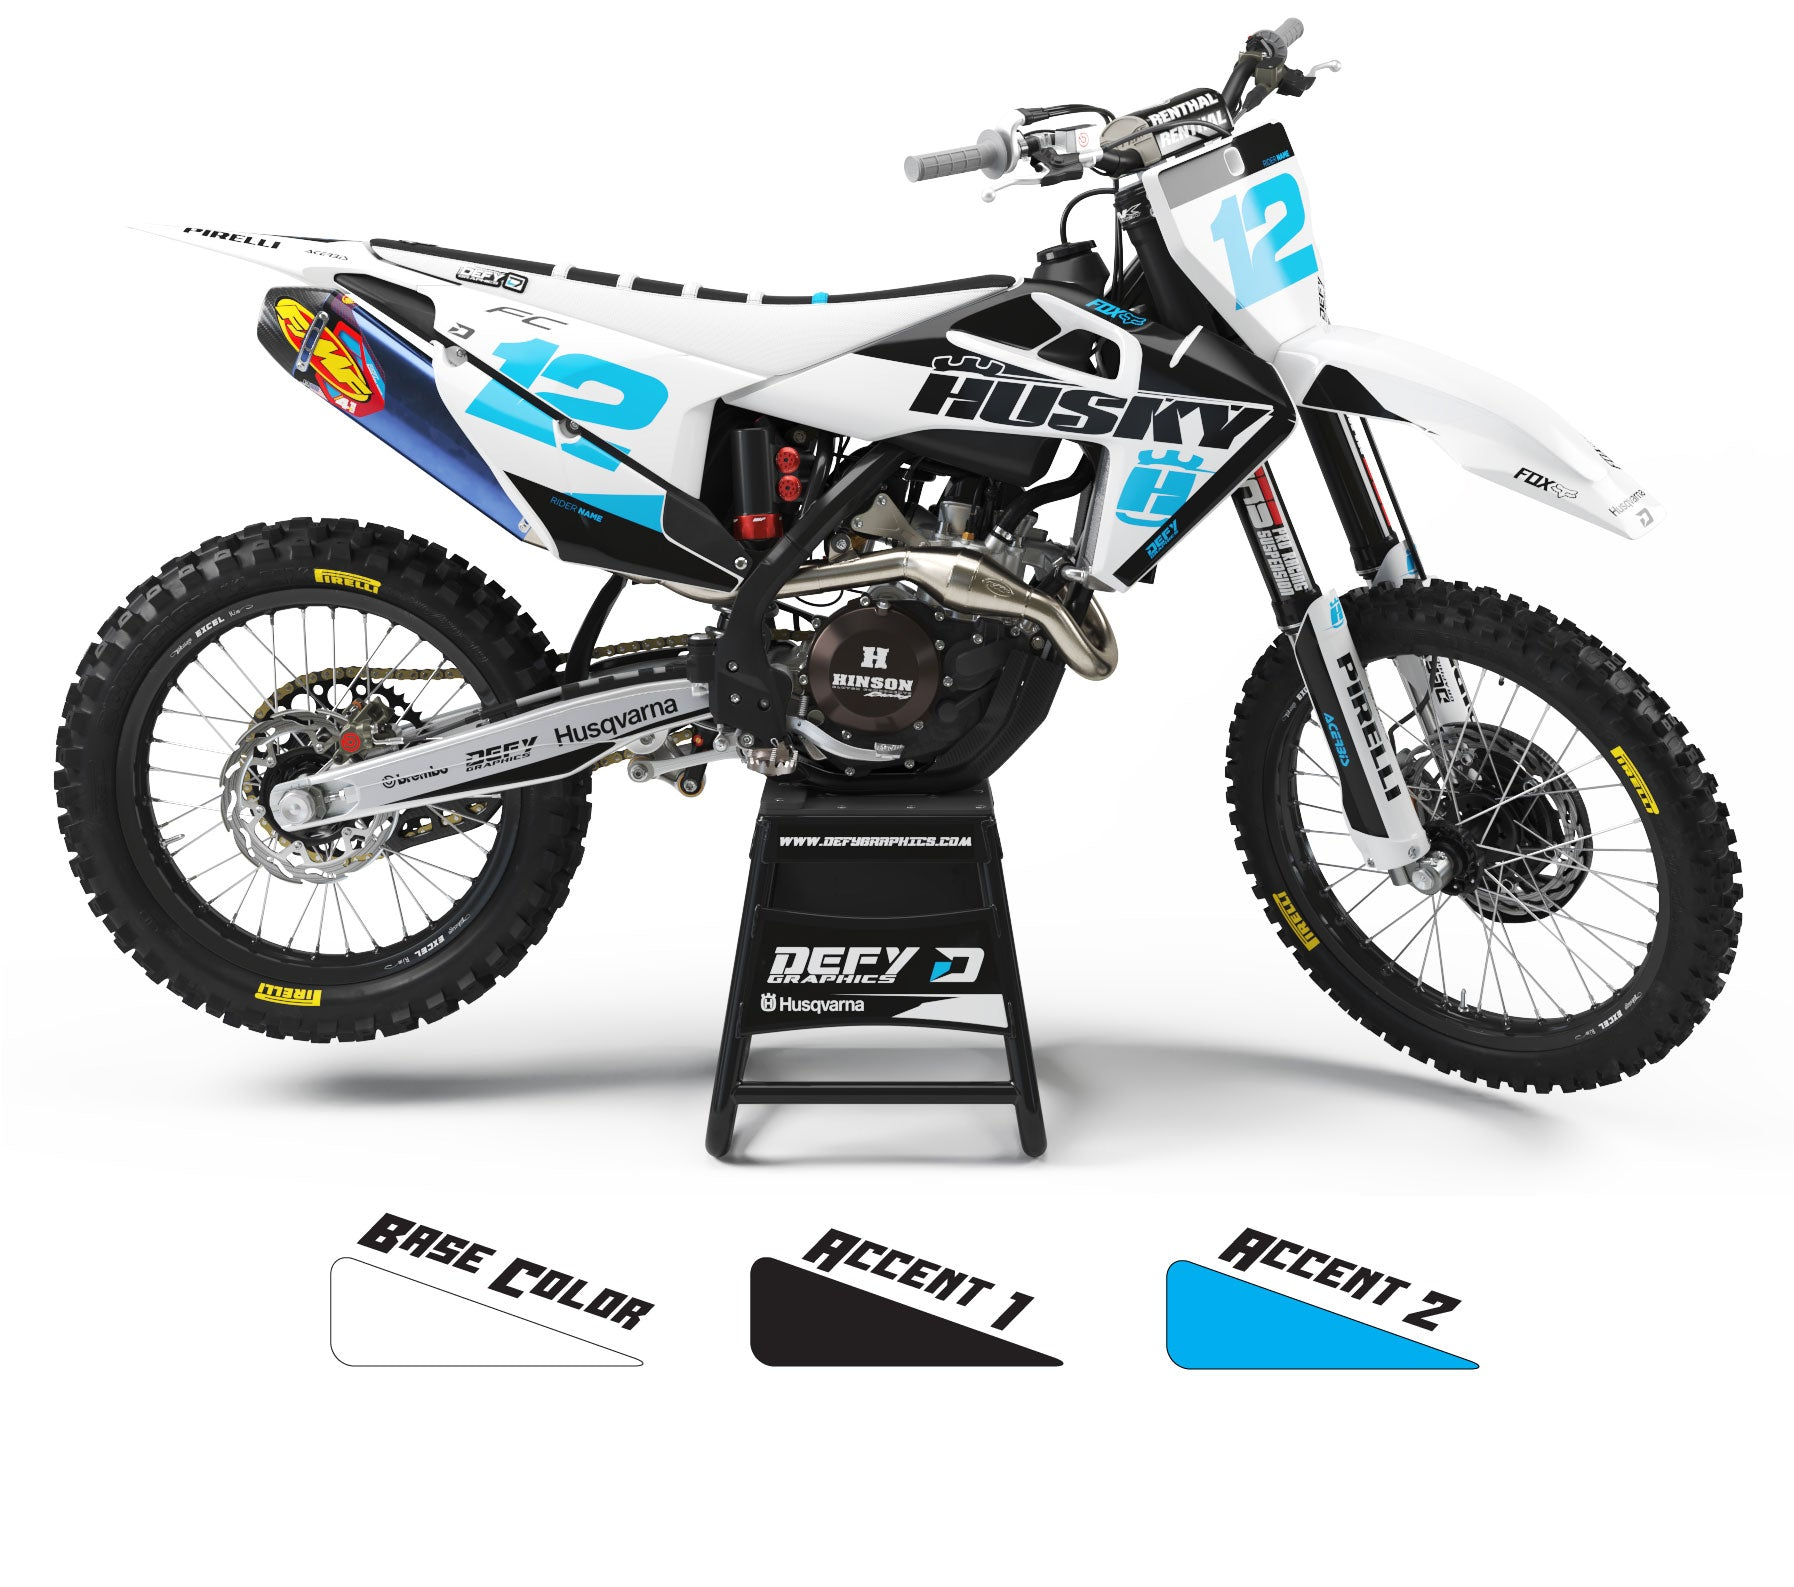 DISTRICT SERIES - Husqvarna